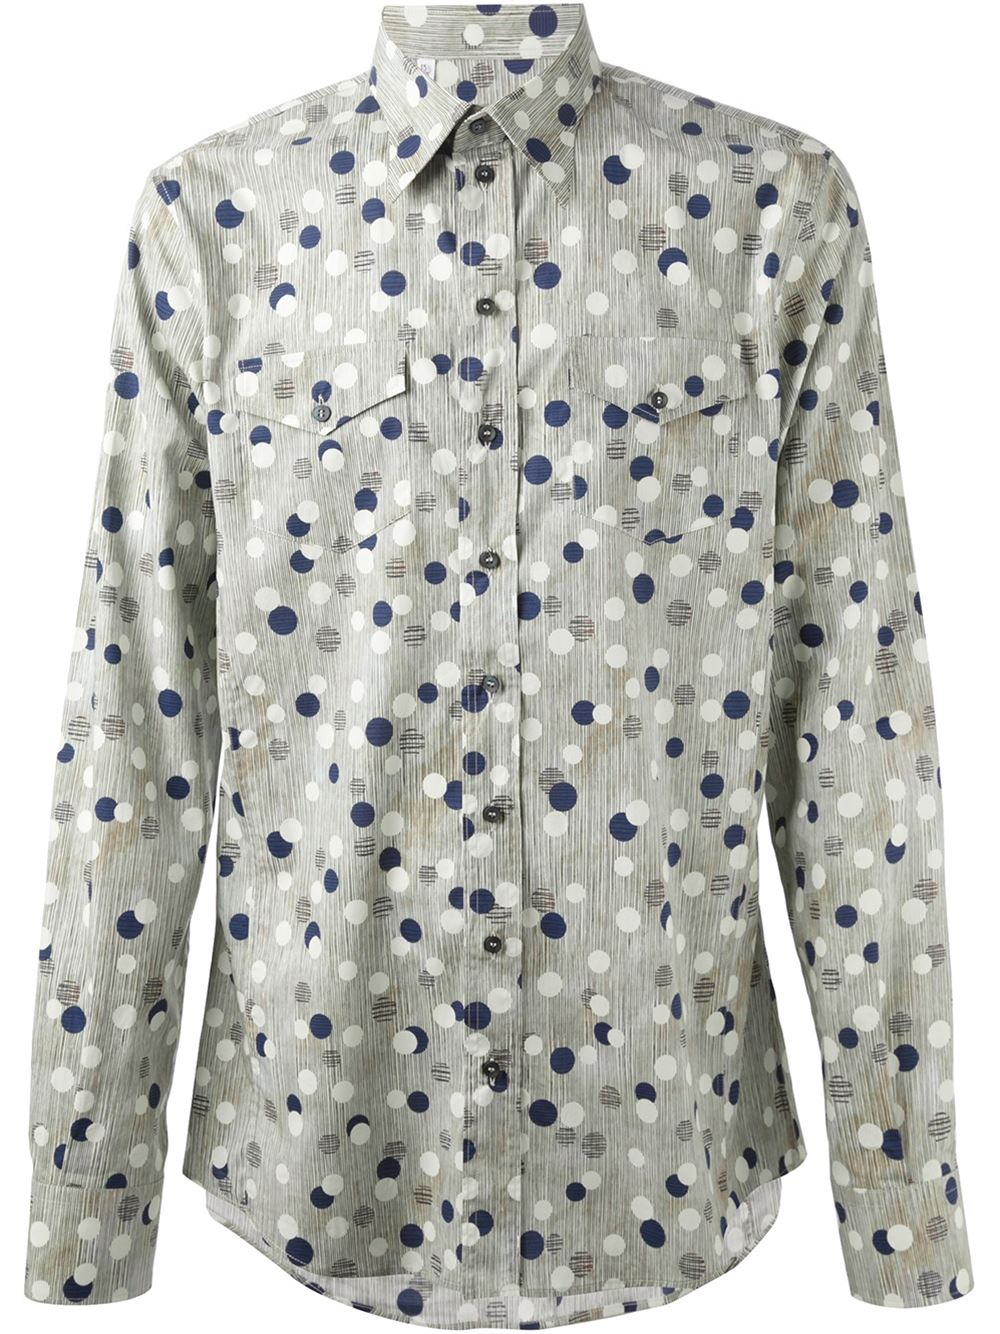 Shop for polka dots shirts mens online at Target. Free shipping on purchases over $35 and save 5% every day with your Target REDcard.